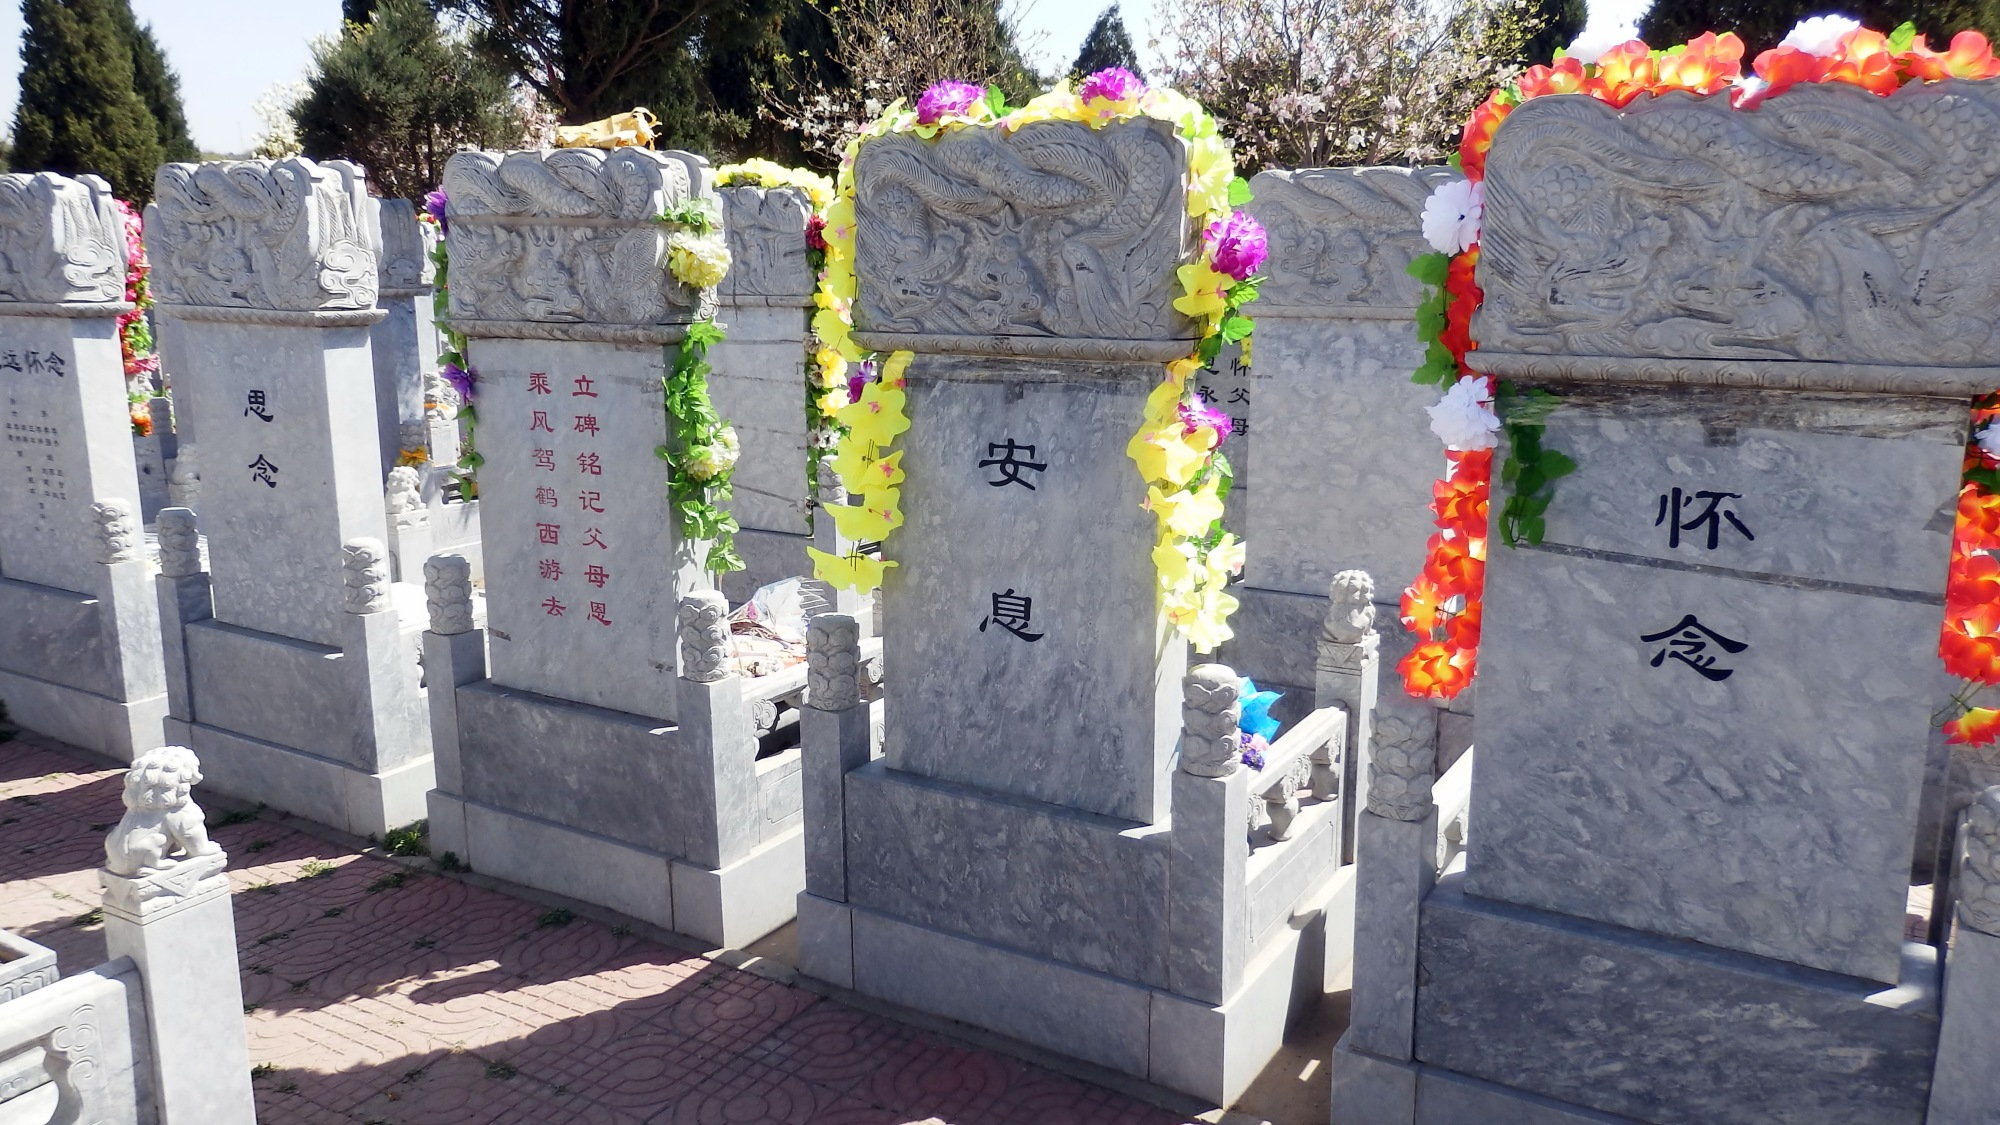 Qingming-Fest in China